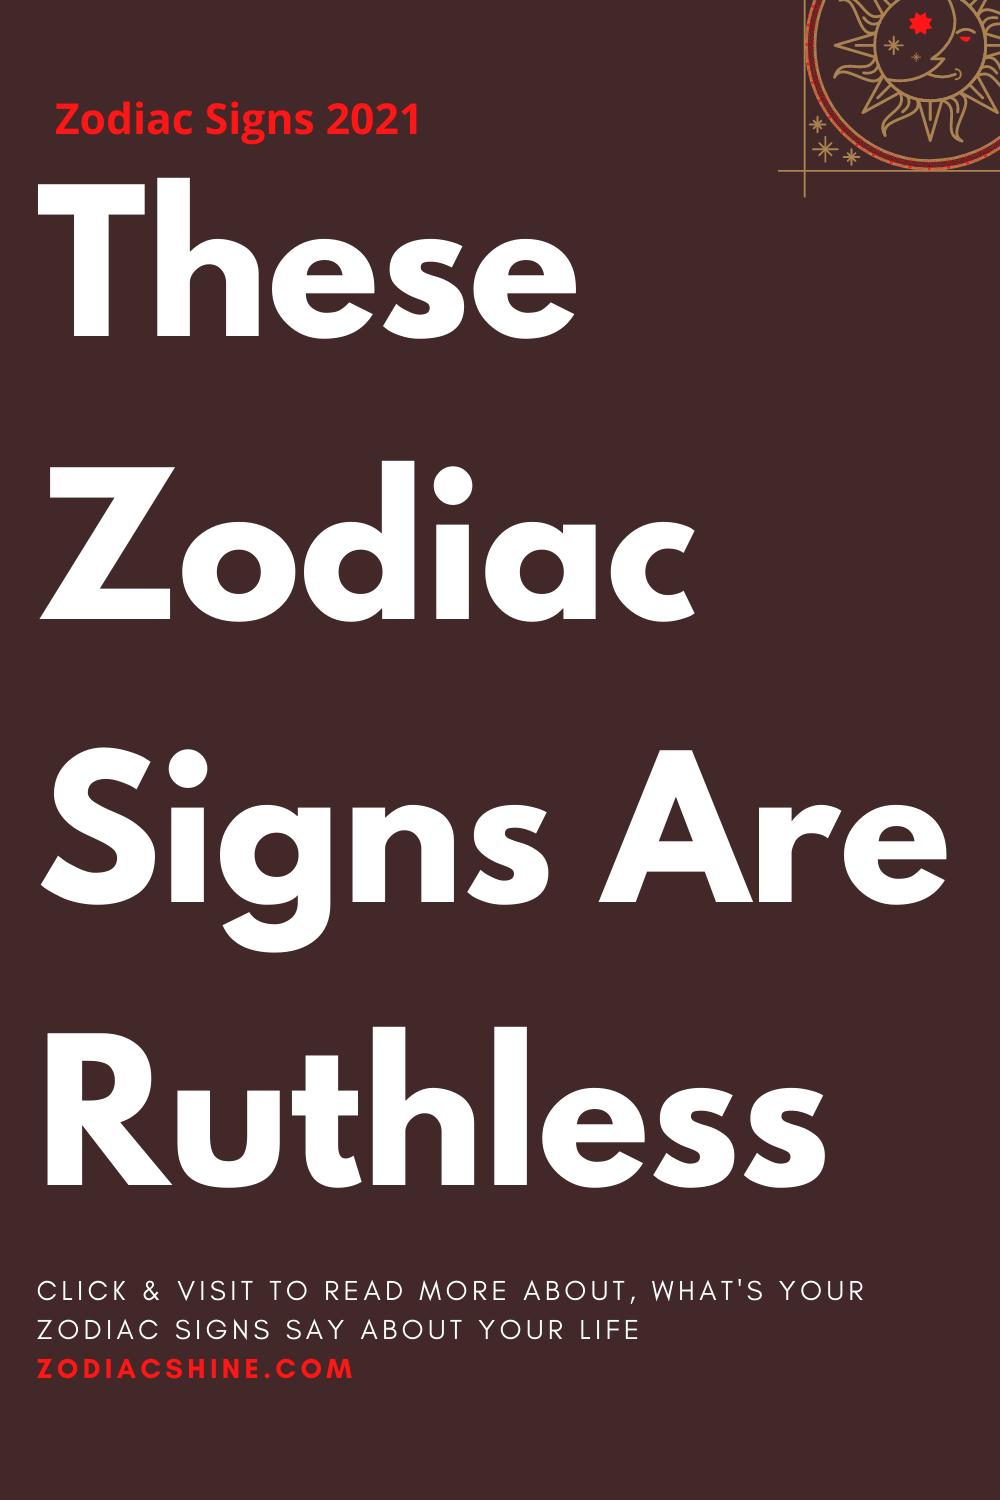 These Zodiac Signs Are Ruthless